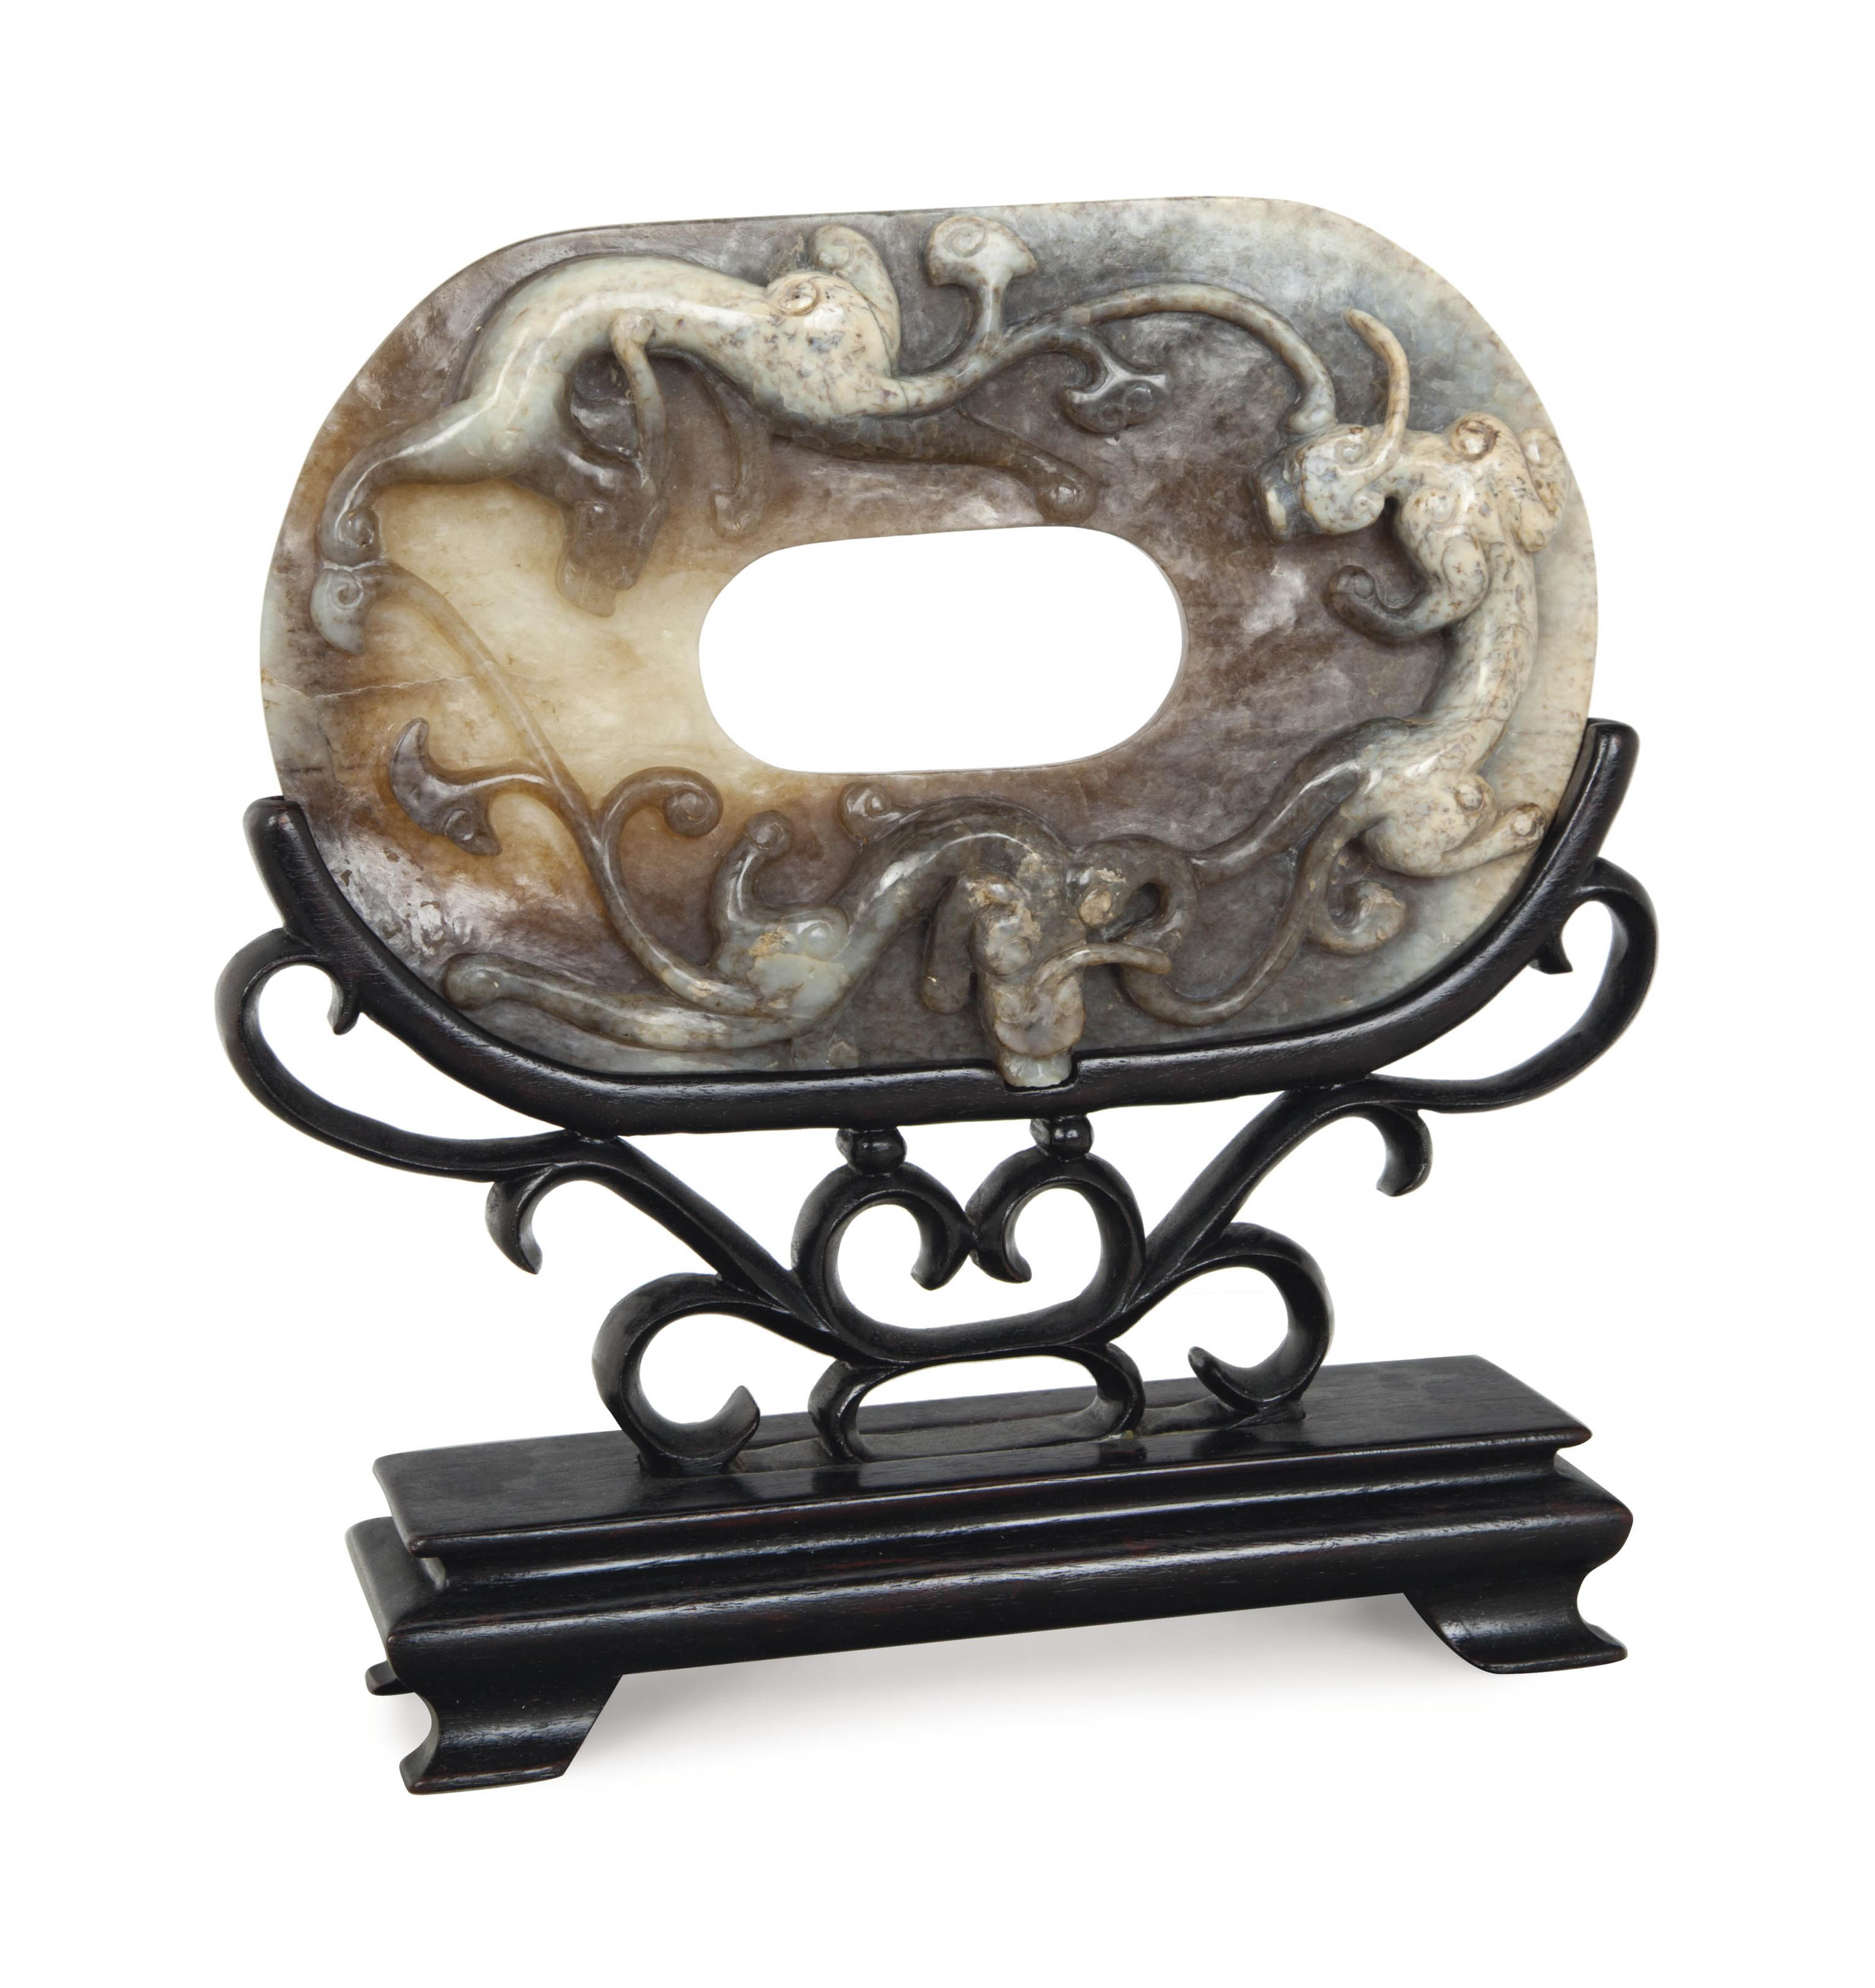 A CHINESE BROWN AND GREY JADE OVAL ARCHAISTIC CARVING,